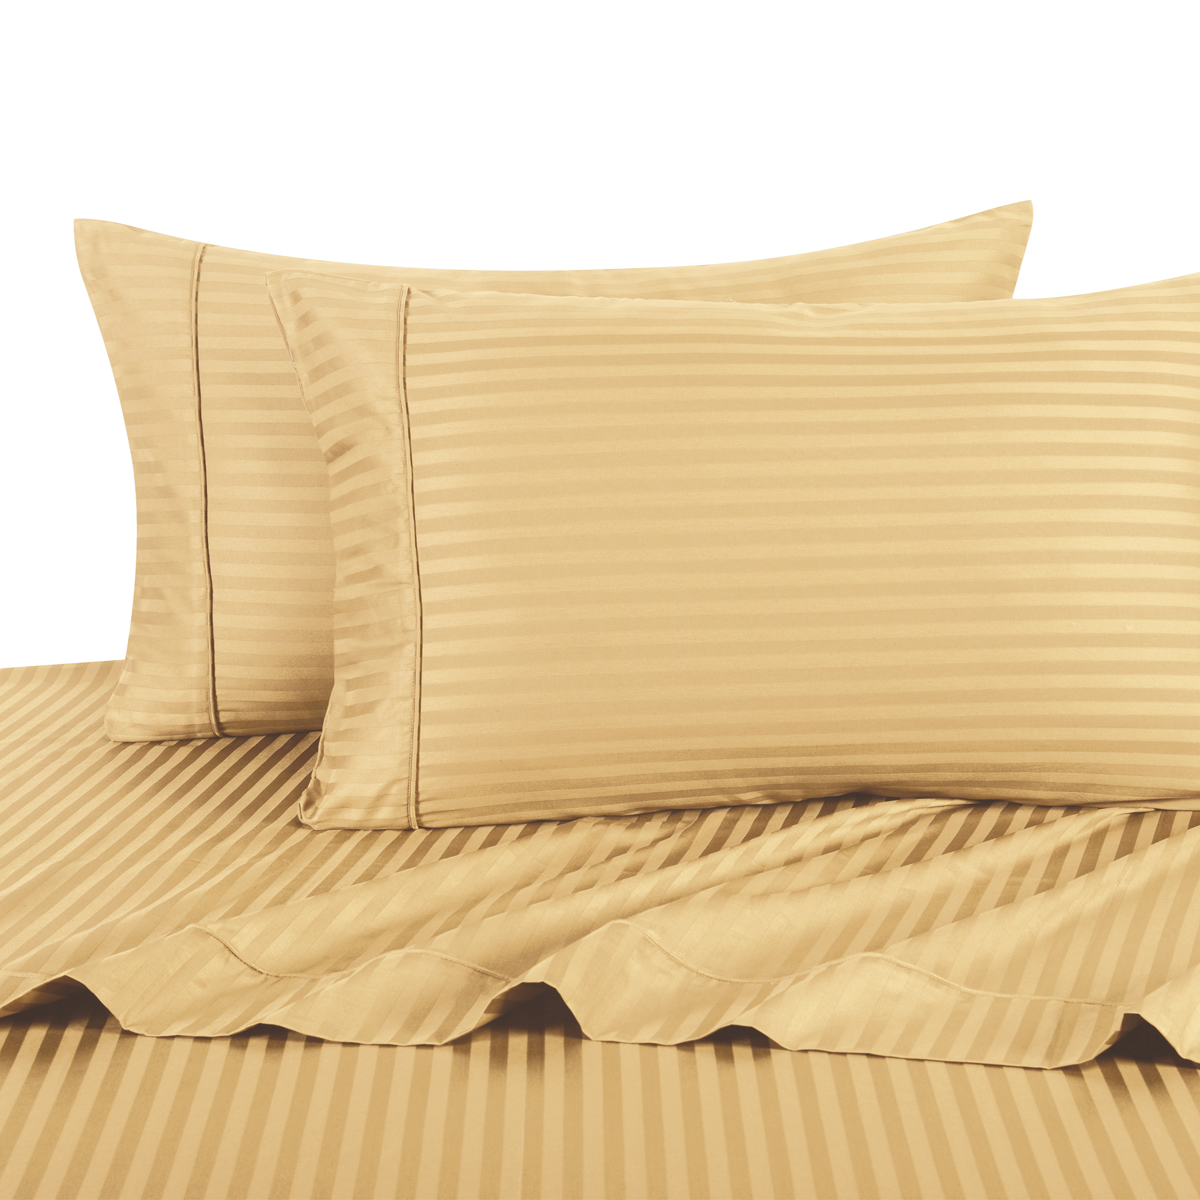 100% Cotton Sateen Sheets 600 Thread Count Sateen Damask Stripe Collection Comfortable Durable Absorbent and Breathable